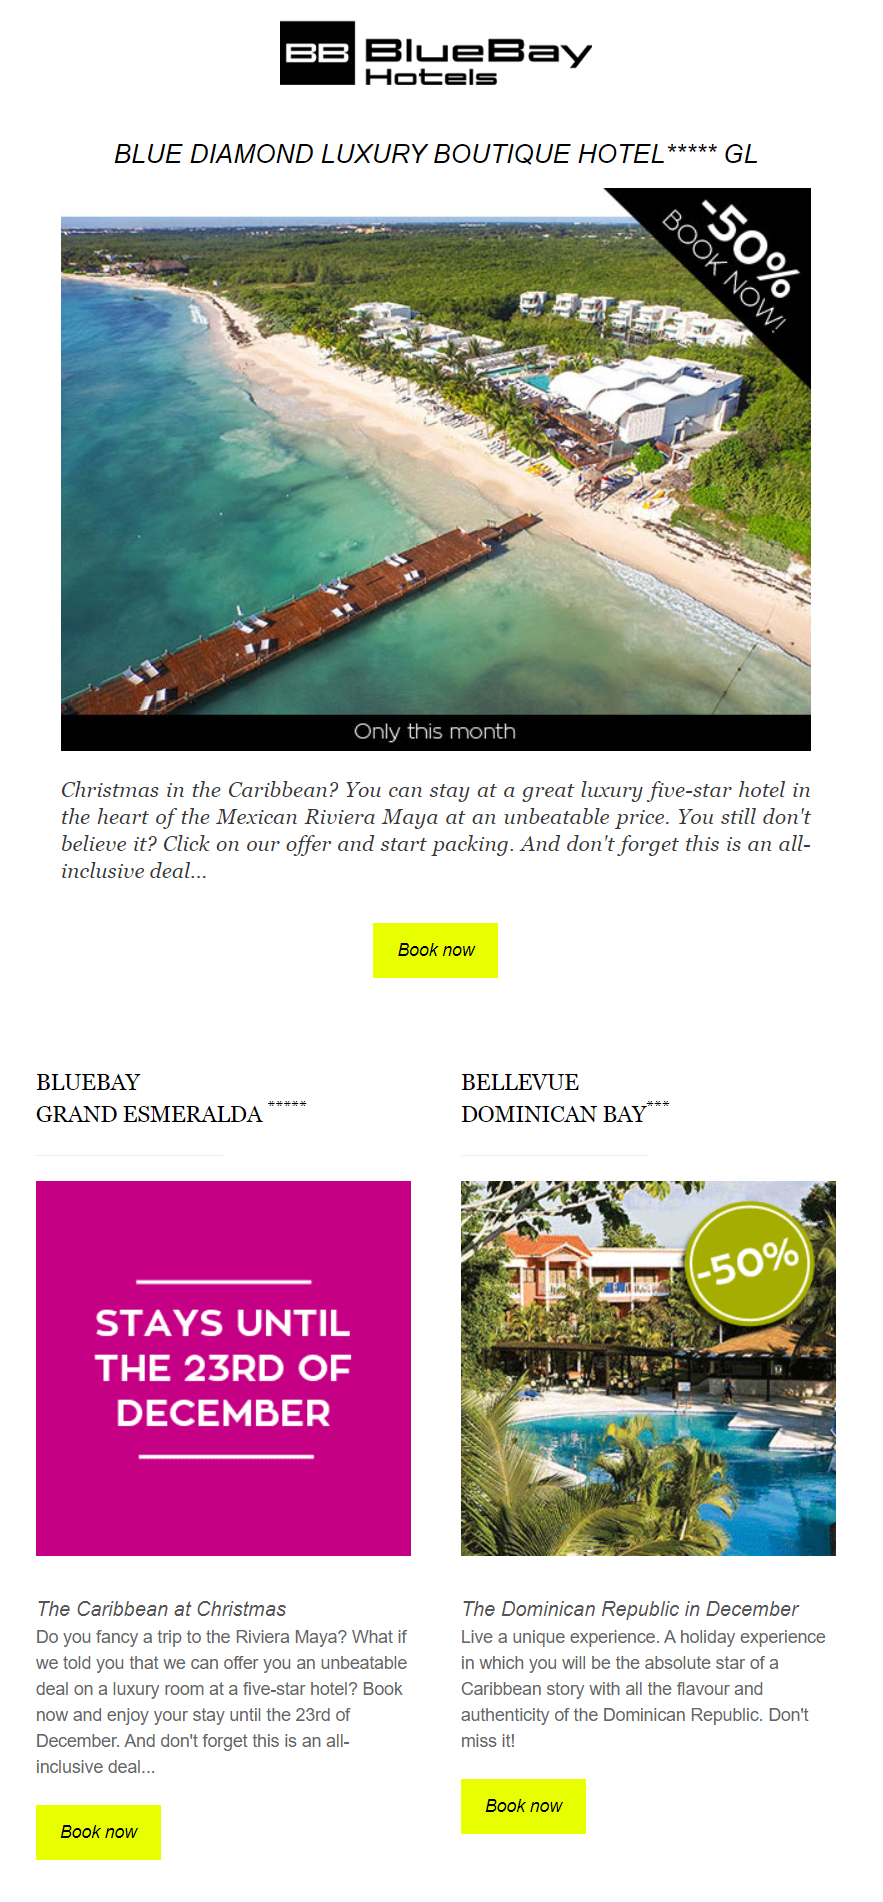 Creative hotel marketing campaigns